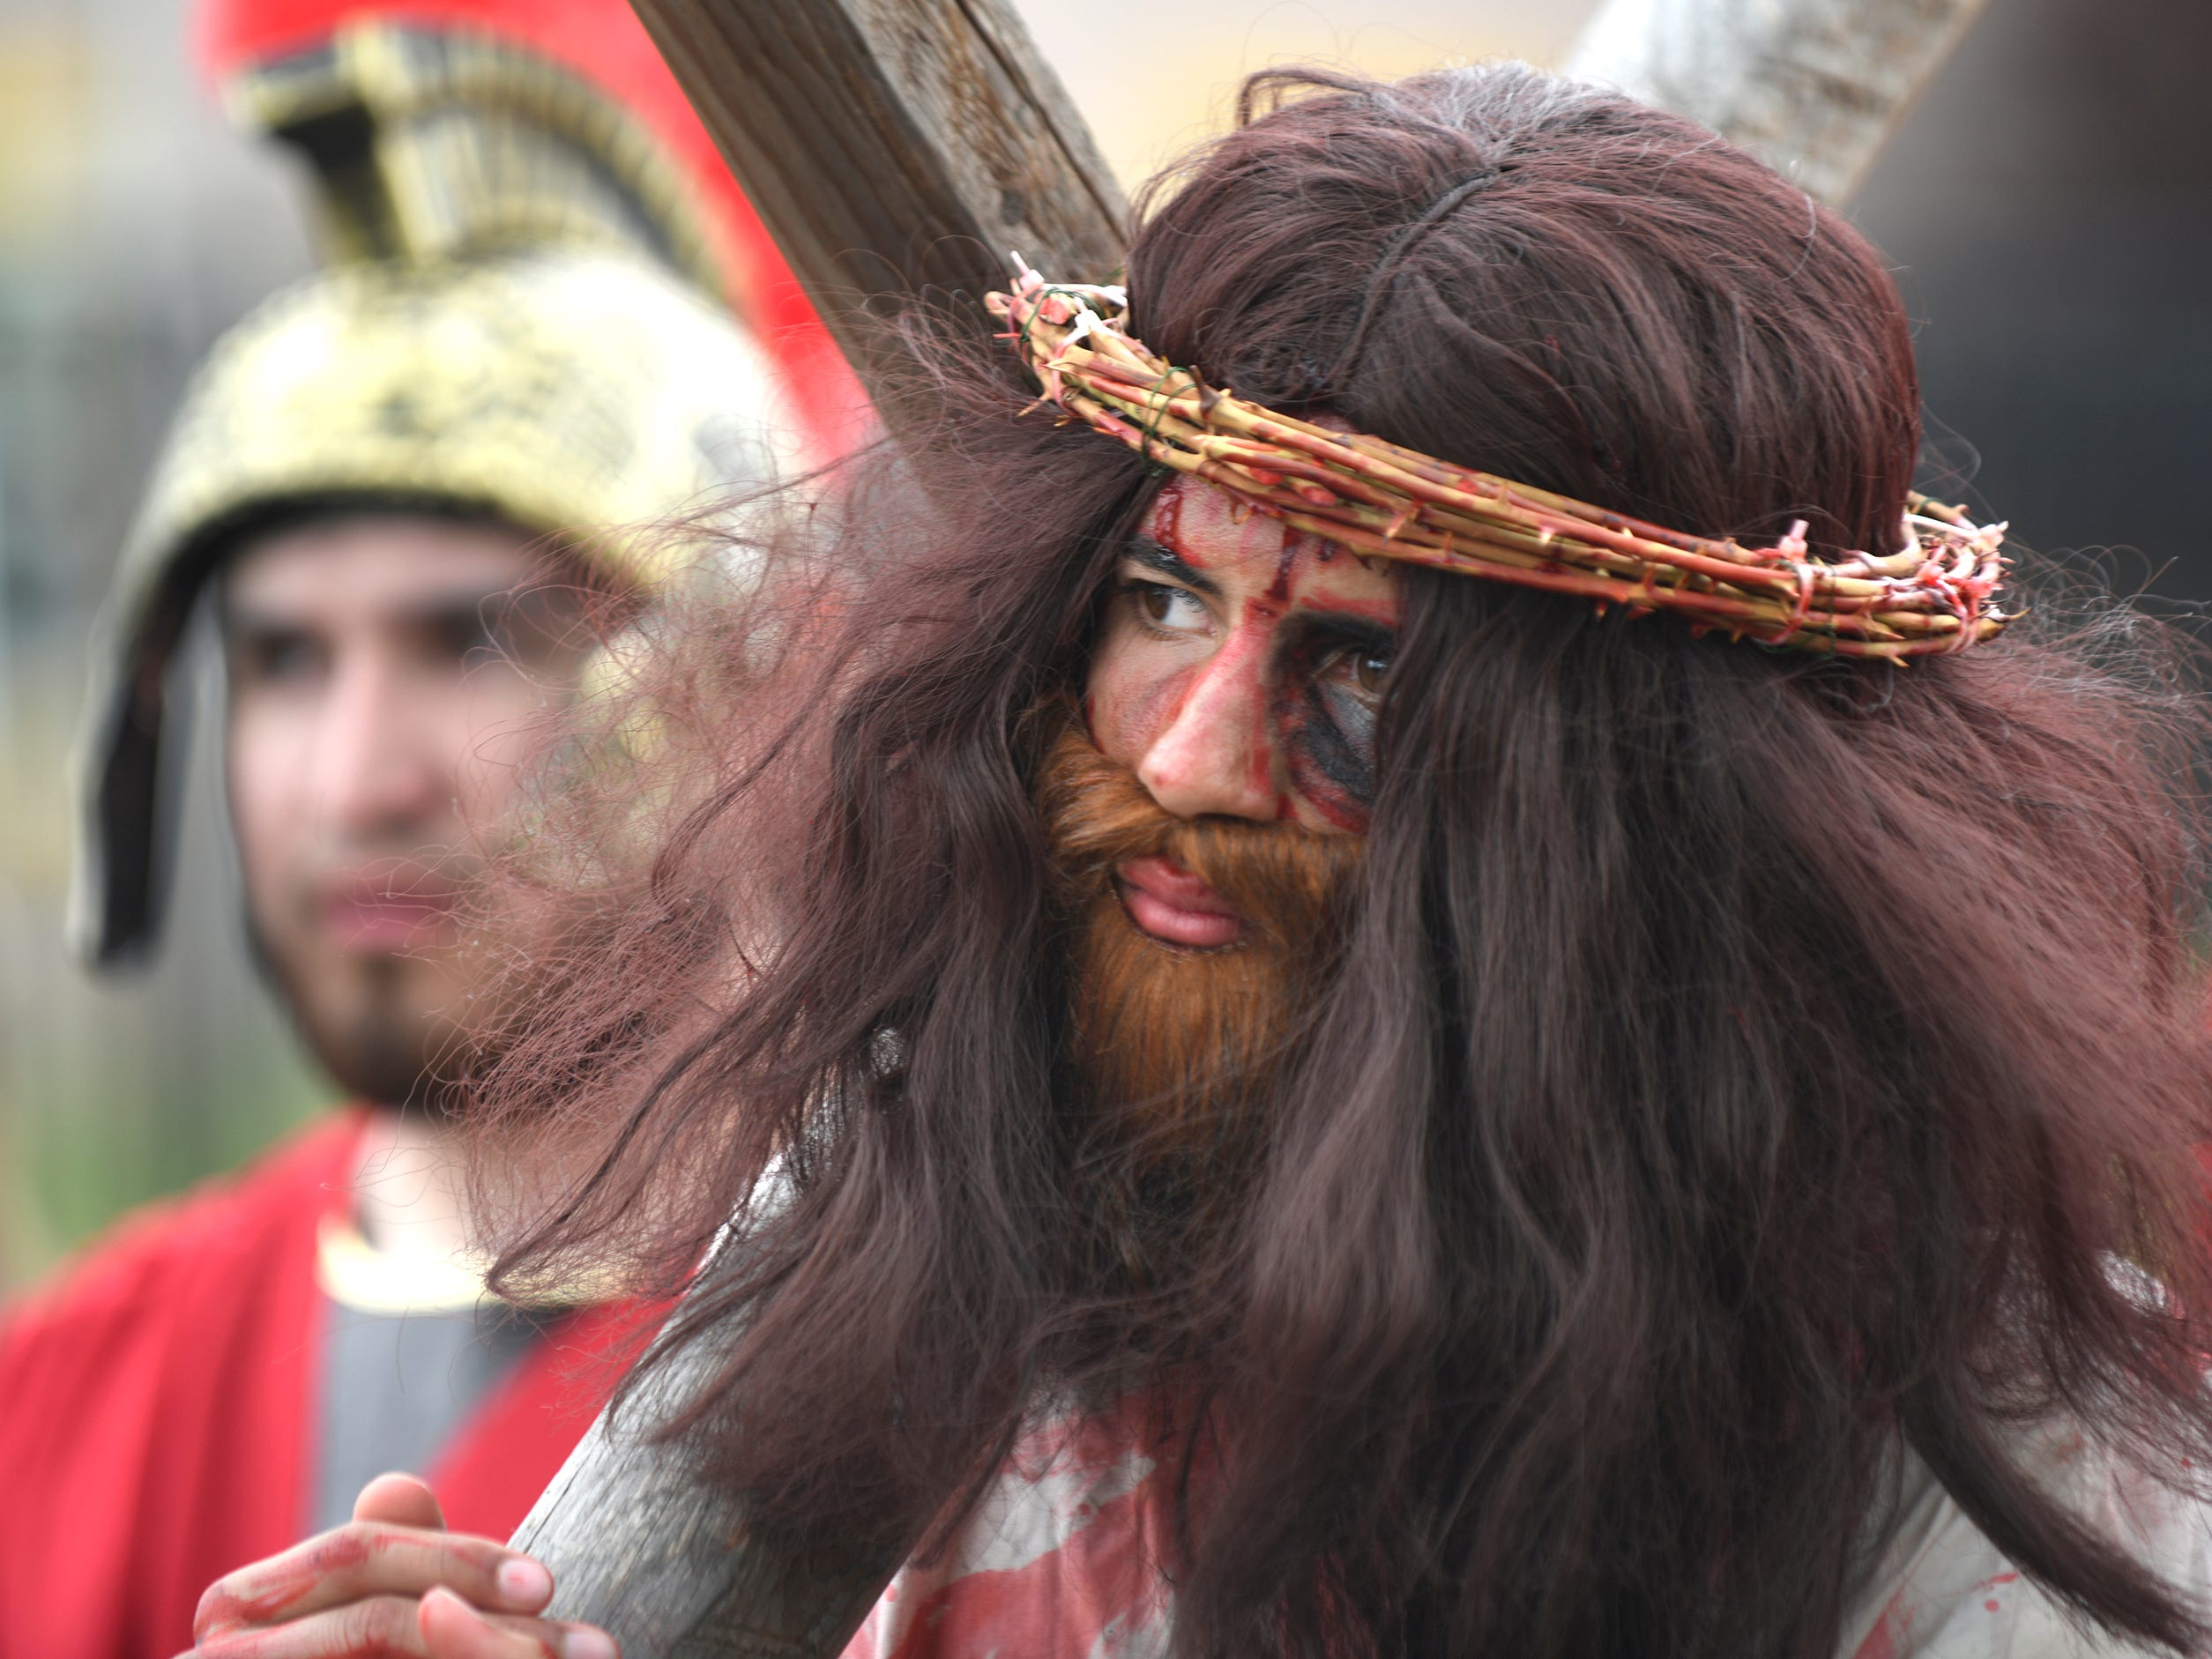 Jesus, played by Darvin Diaz, walks down Almond Street in Vineland during the Good Friday procession, hosted by Divine Mercy Parish.